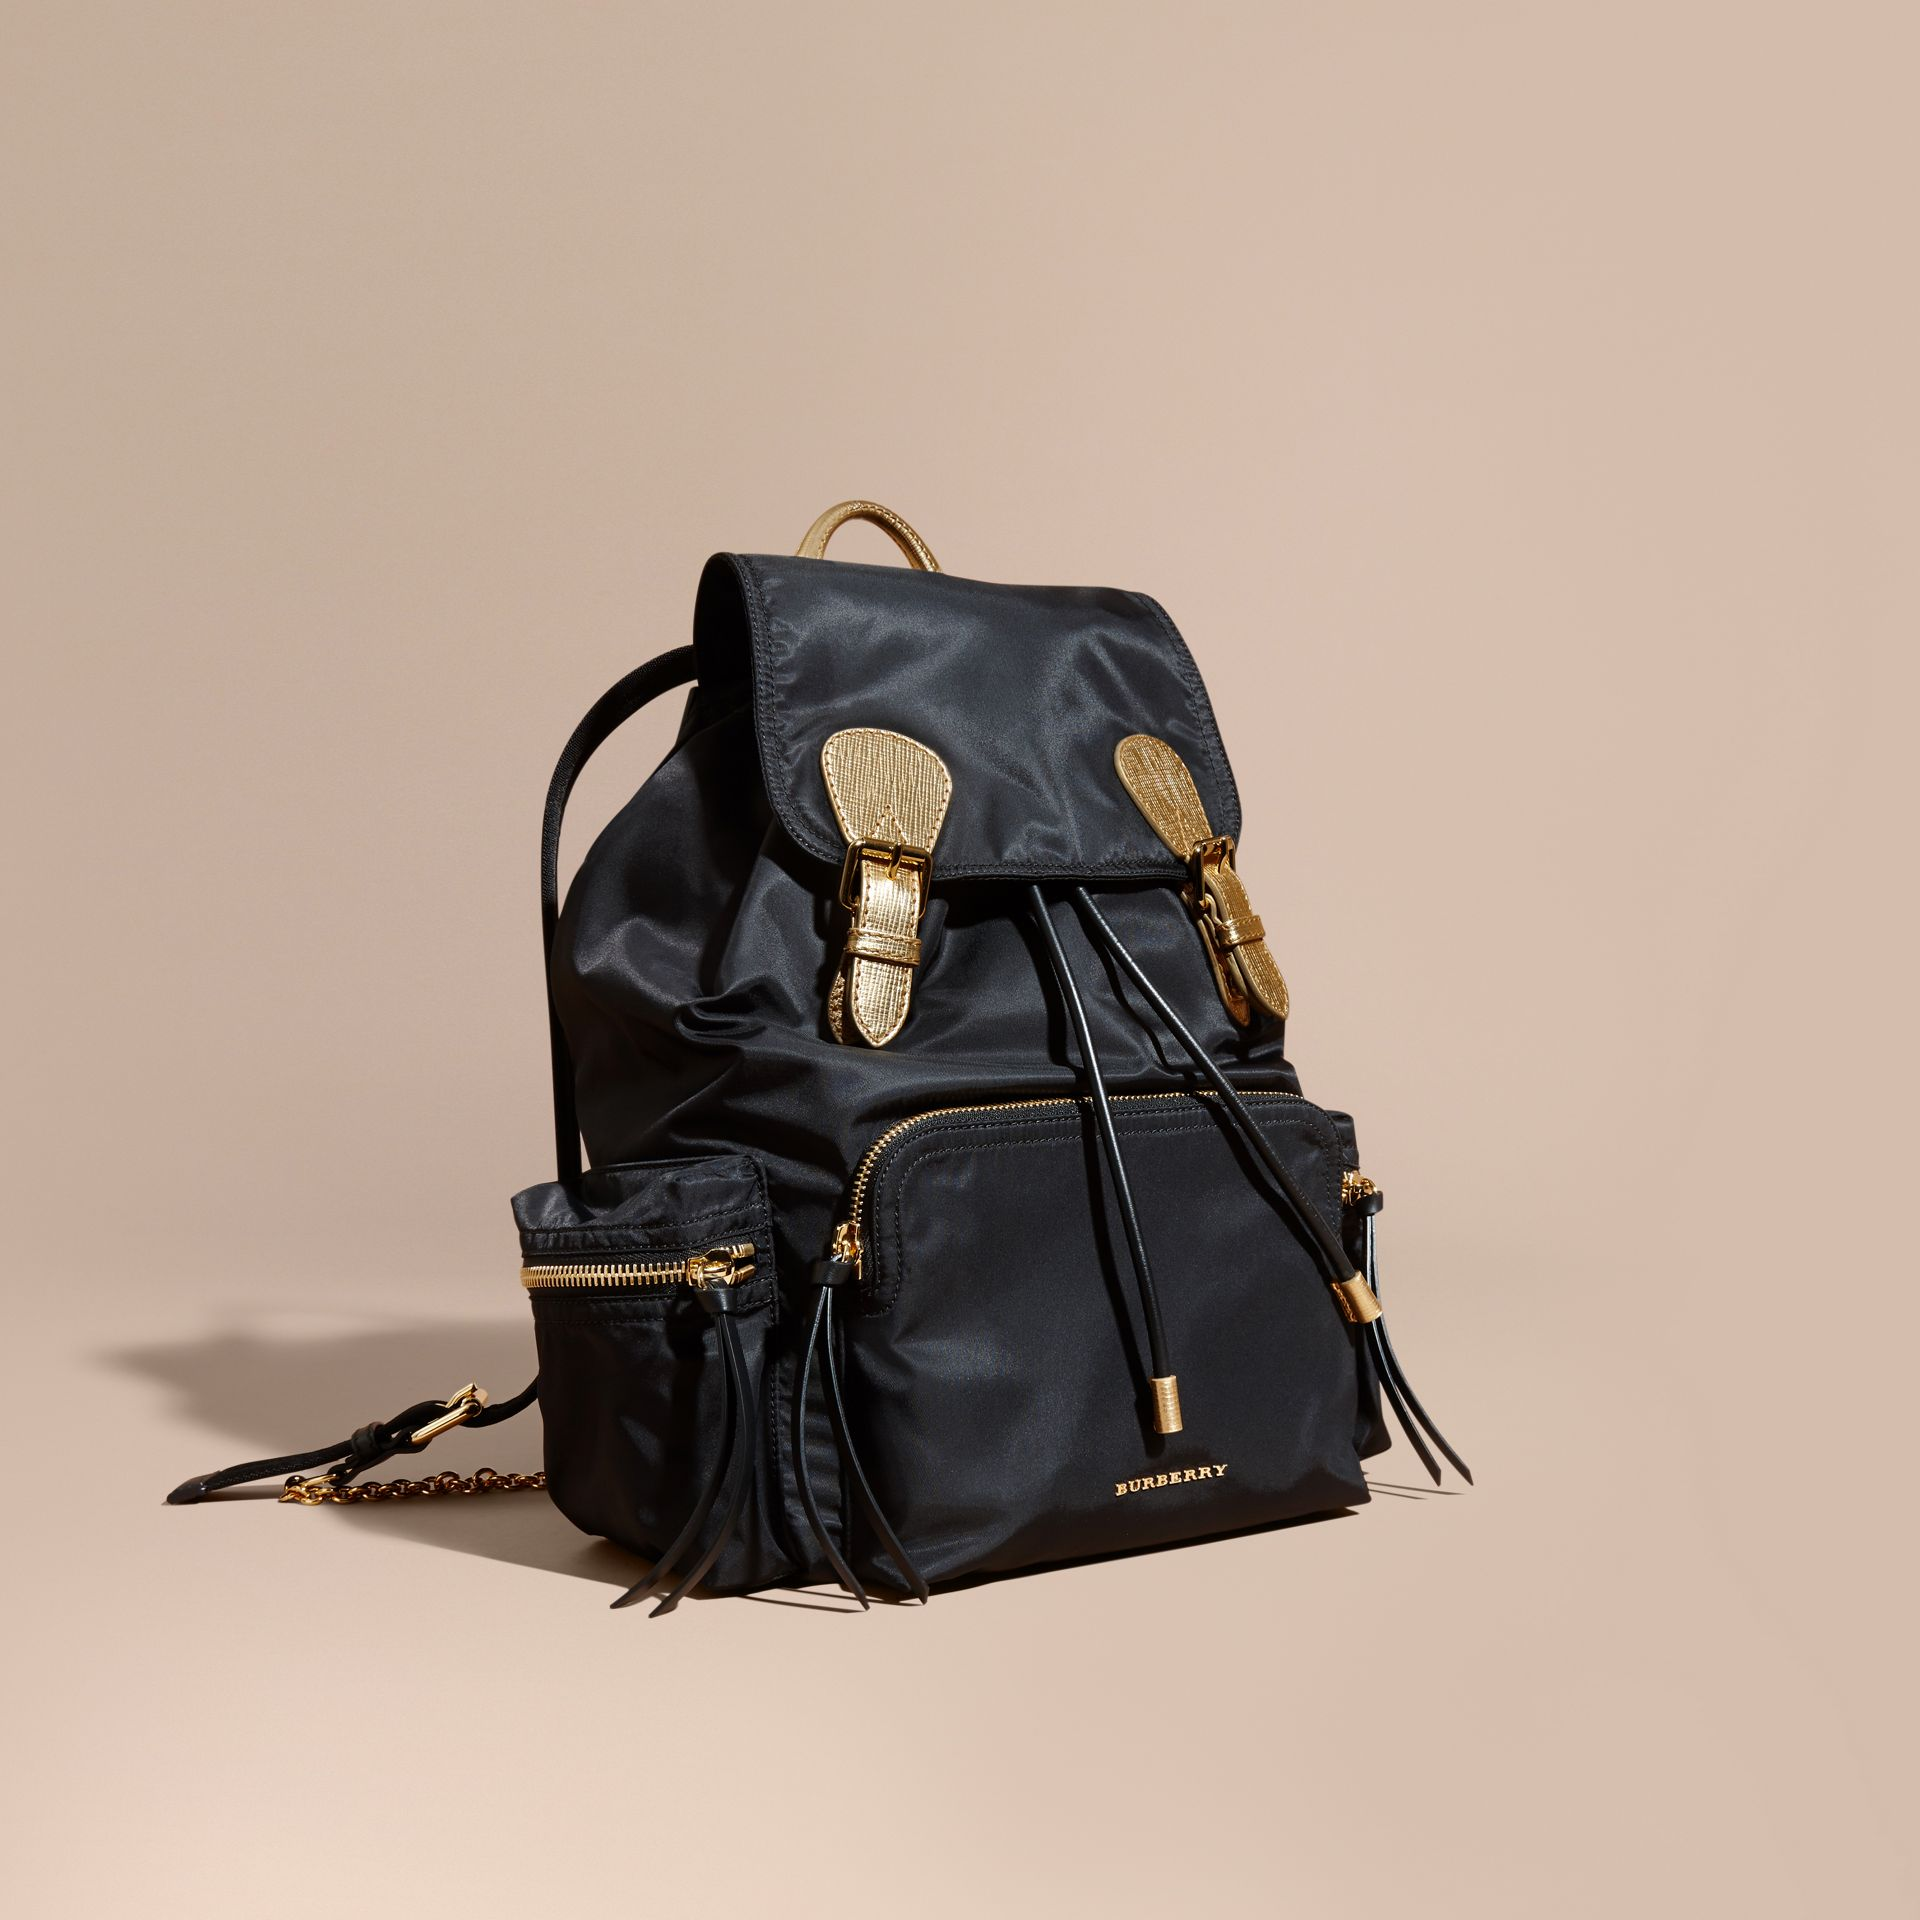 Grand sac The Rucksack en nylon bicolore et cuir - photo de la galerie 1